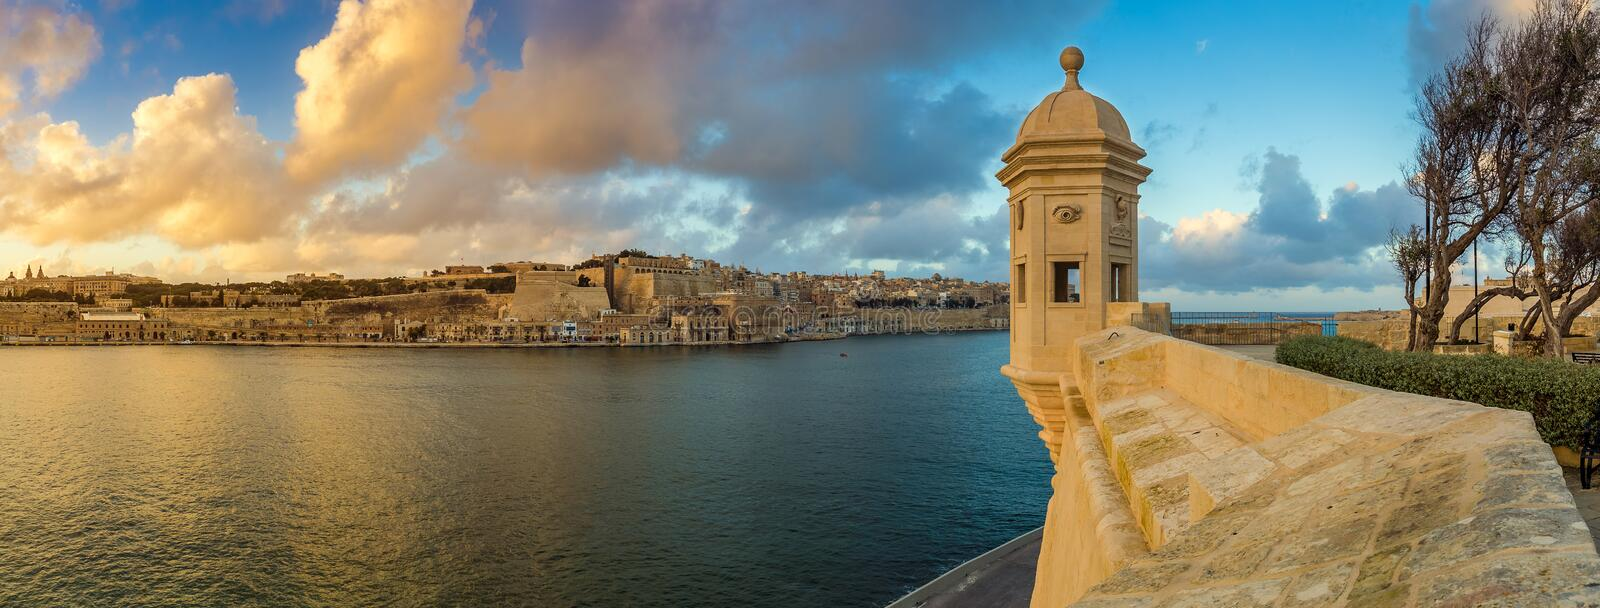 Senglea, Malta - Sunset and panoramic skyline view at the watch tower of Fort Saint Michael, Gardjola Gardens with beautiful sky. And clouds royalty free stock images